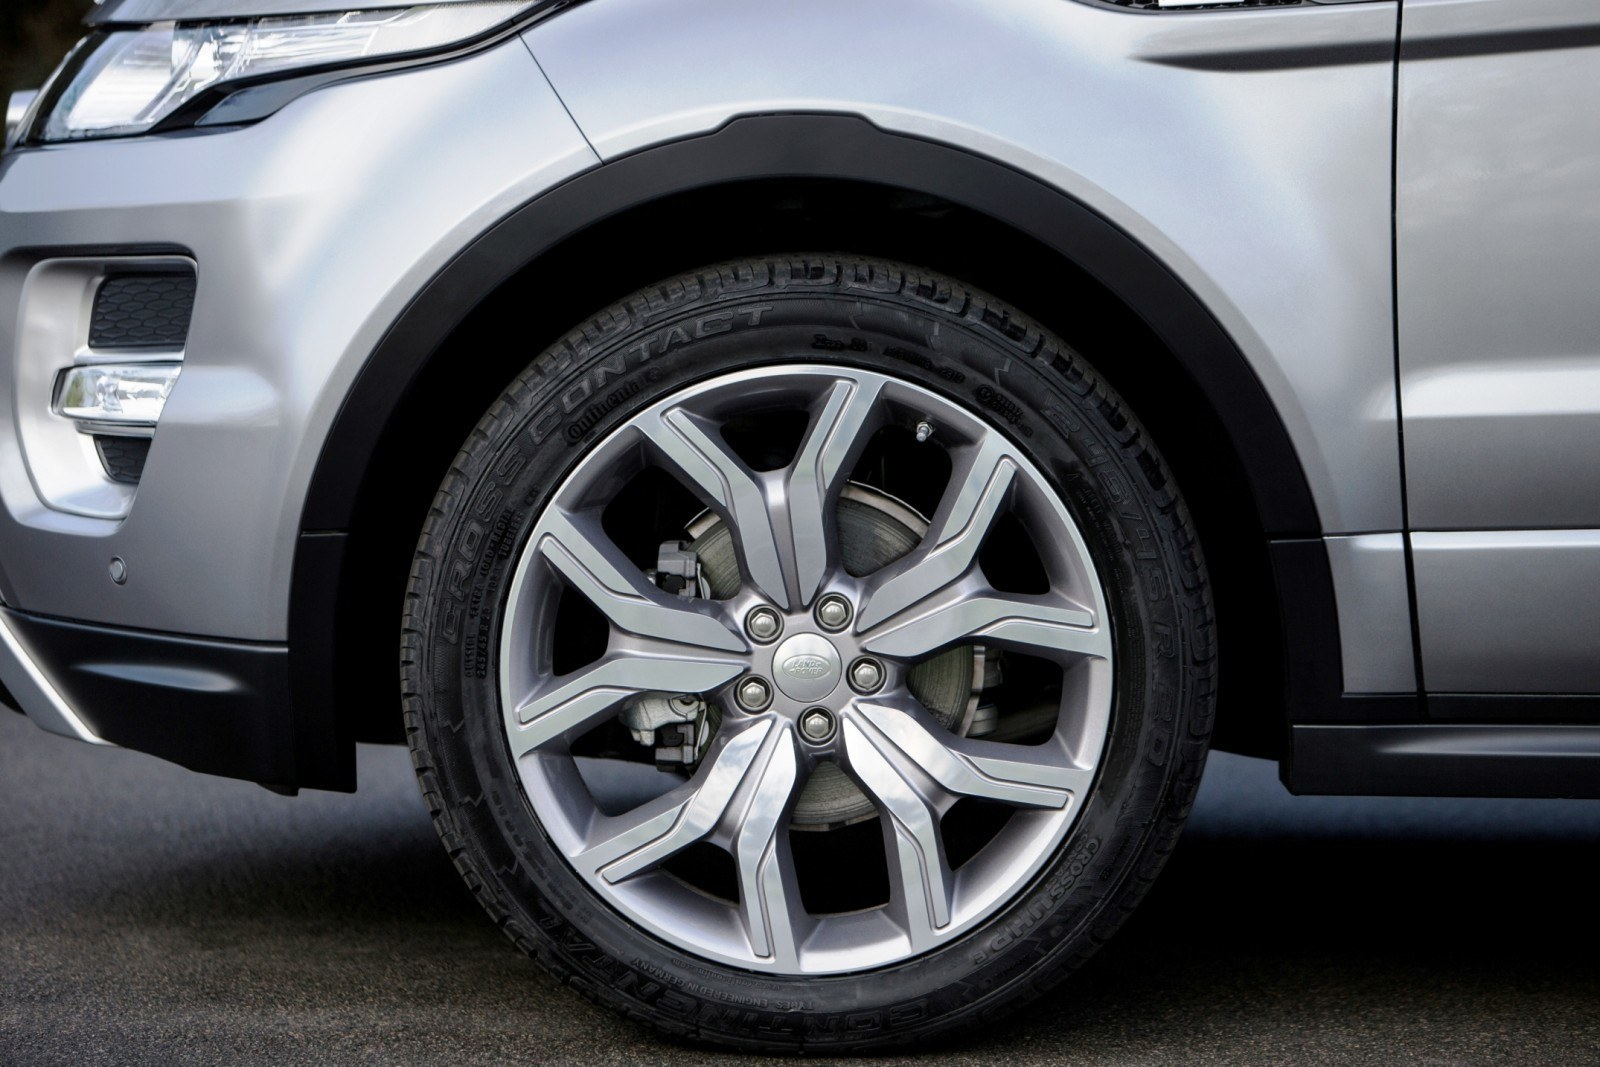 2015 Range Rover Evoque Gains 9-Speed Auto, Refreshed Info Tech and Boosted Engine HP 10